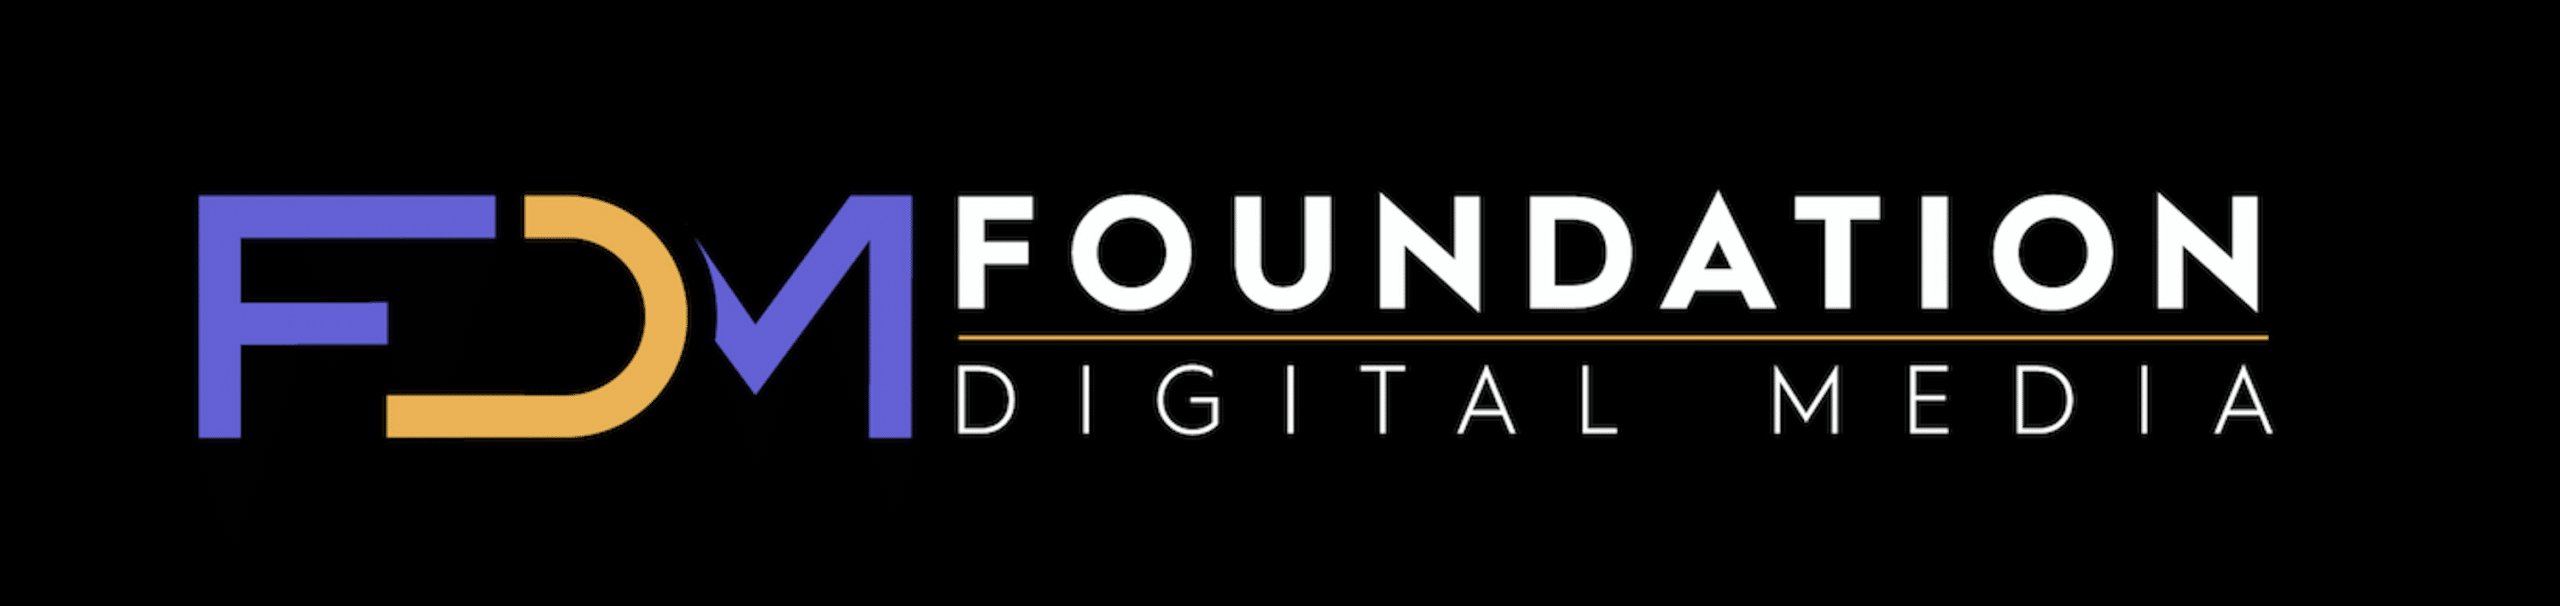 Foundation Digital Media